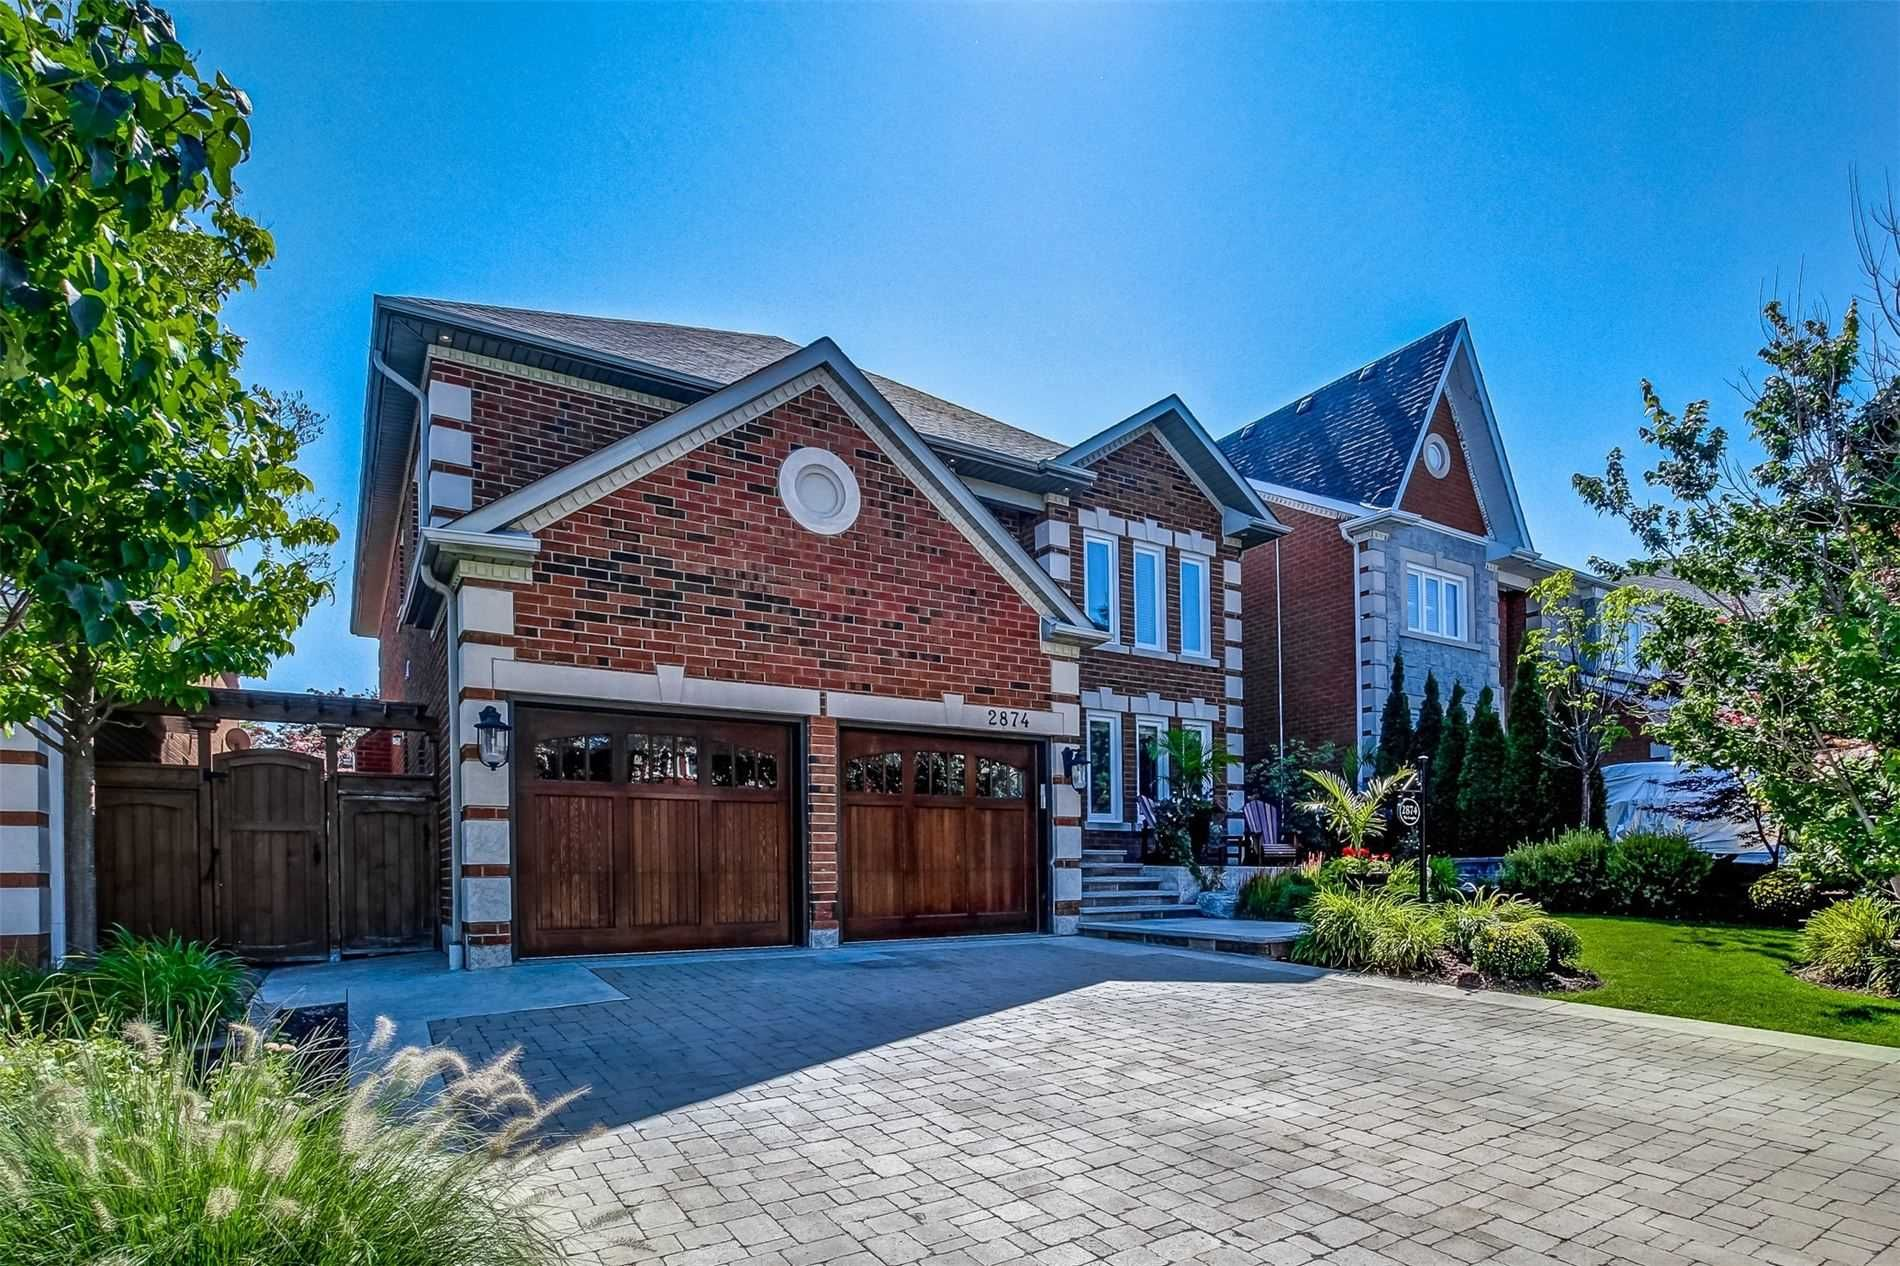 Main Photo: 2874 Termini Terrace in Mississauga: Central Erin Mills House (2-Storey) for sale : MLS®# W4569955